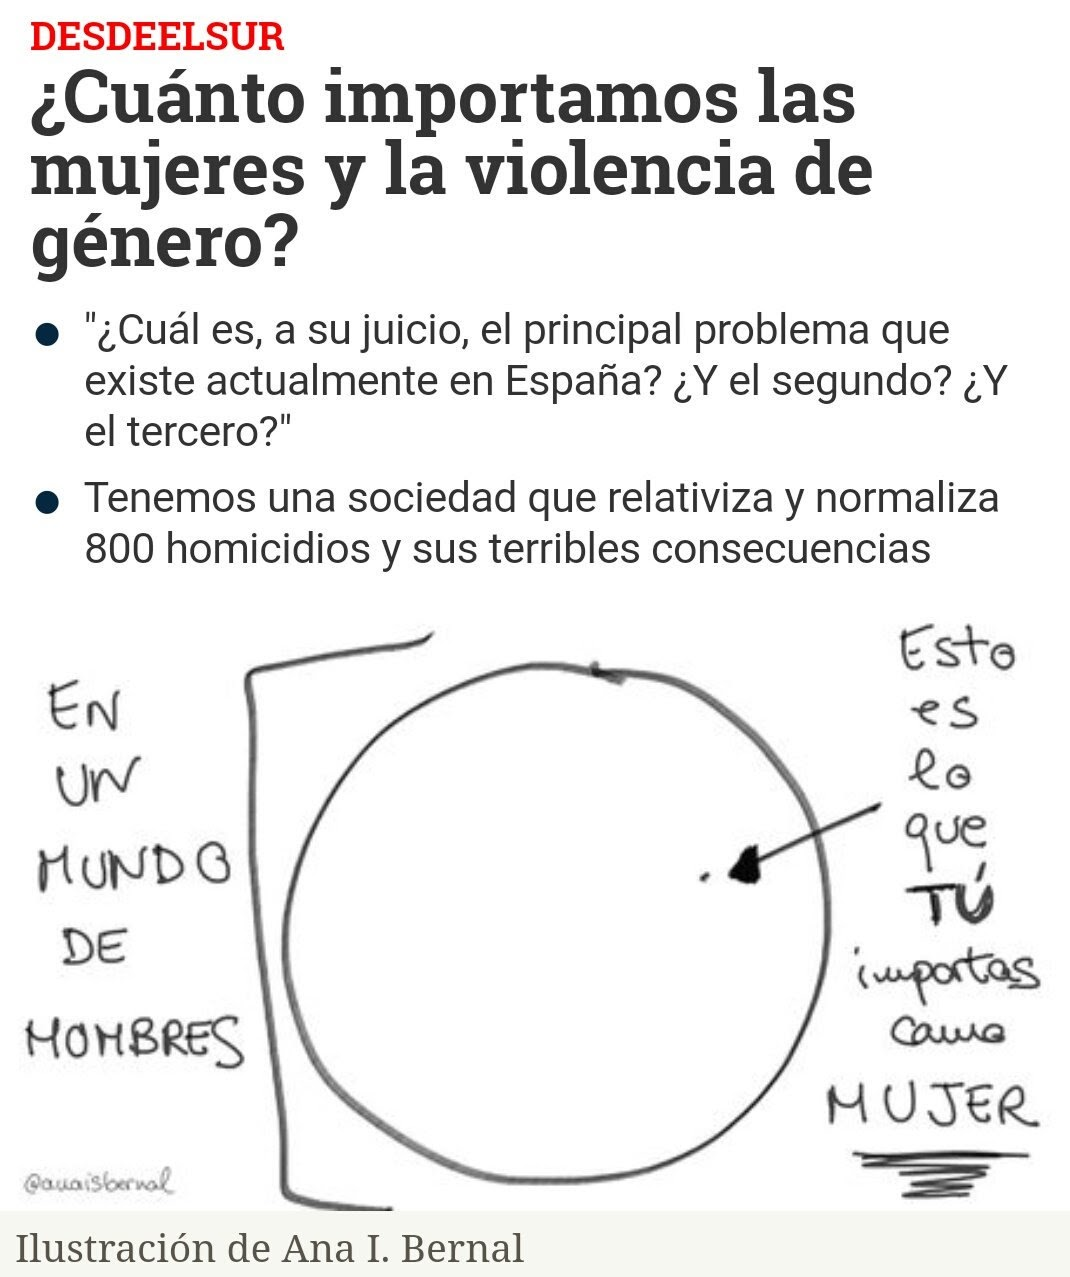 CUANTO IMPORTAMOS LAS MUJERES Y LA VIOLENCIA DE GÉNERO EN ESPAÑA